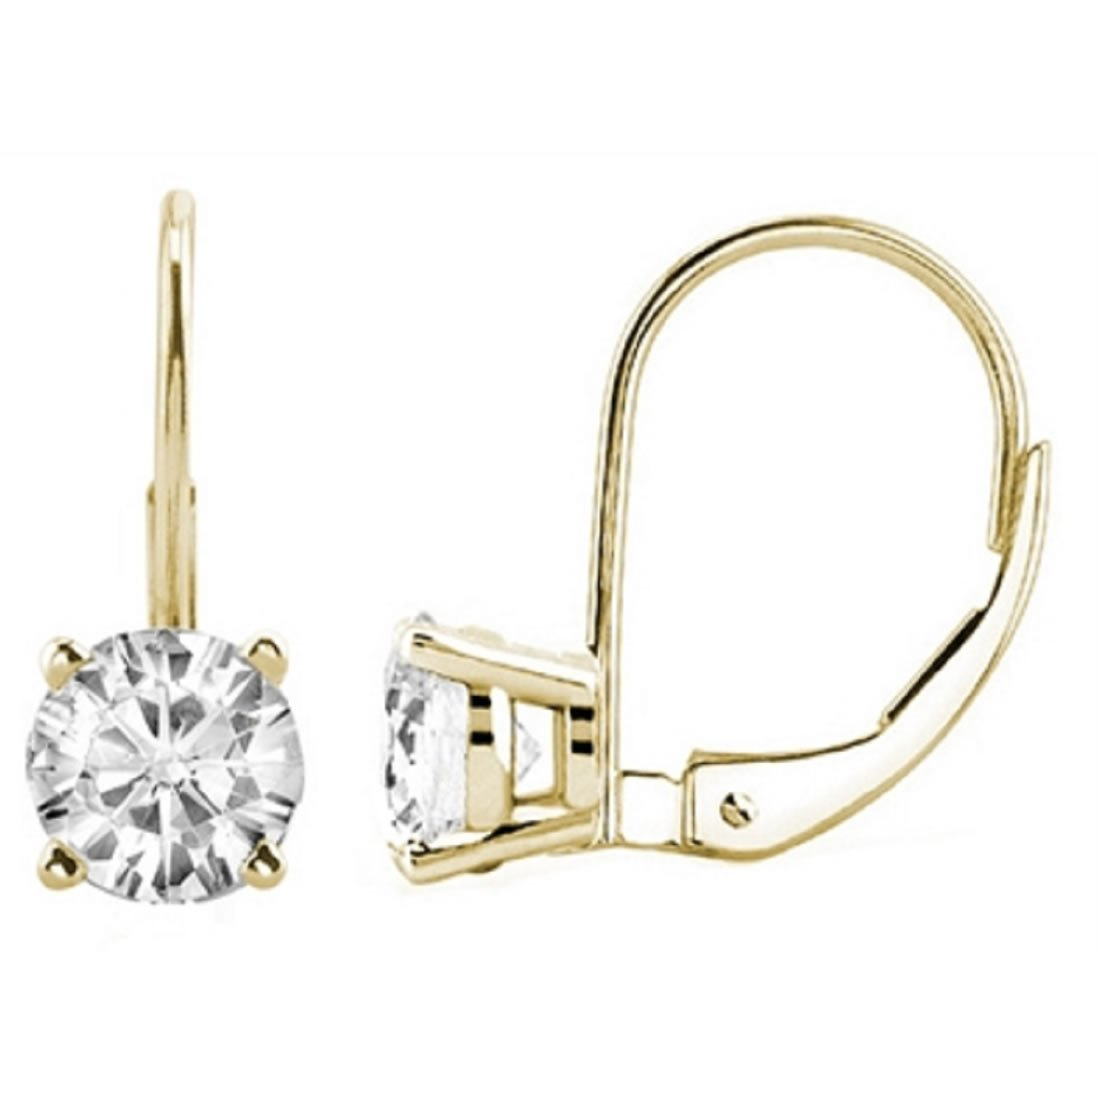 0.30 CTW Round White Diamond Leverback Earrings in 14K Yellow Gold